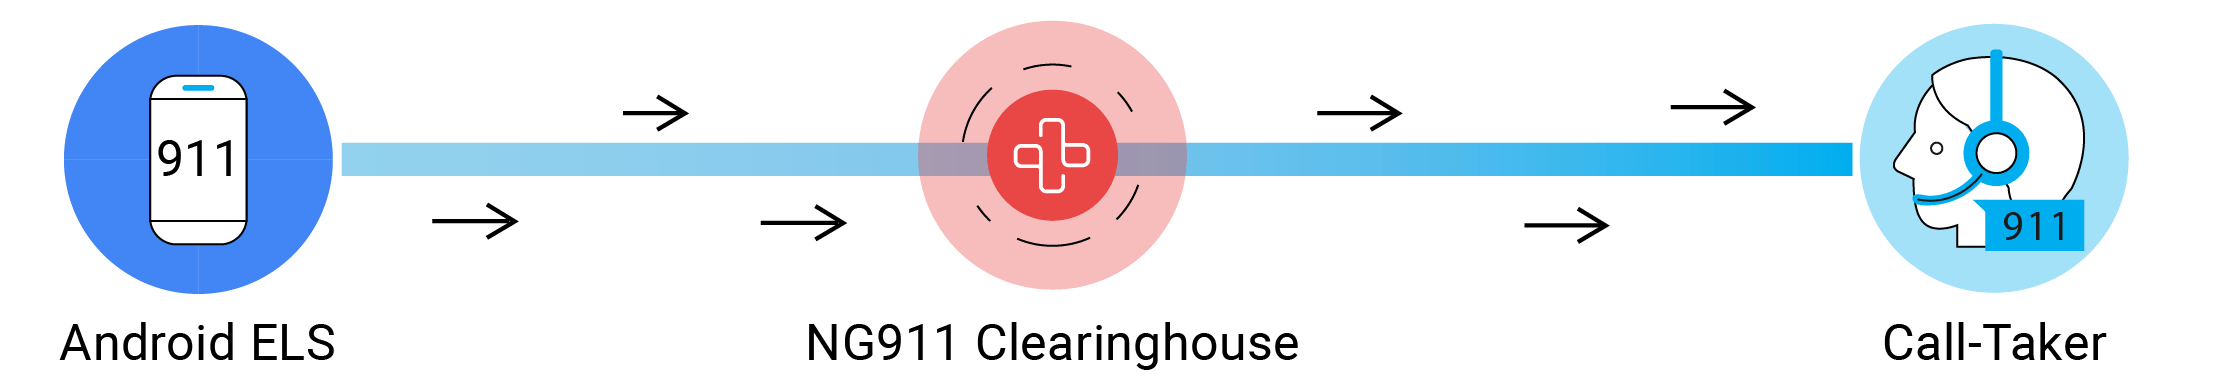 psap-integration-android-els-clearinghouse